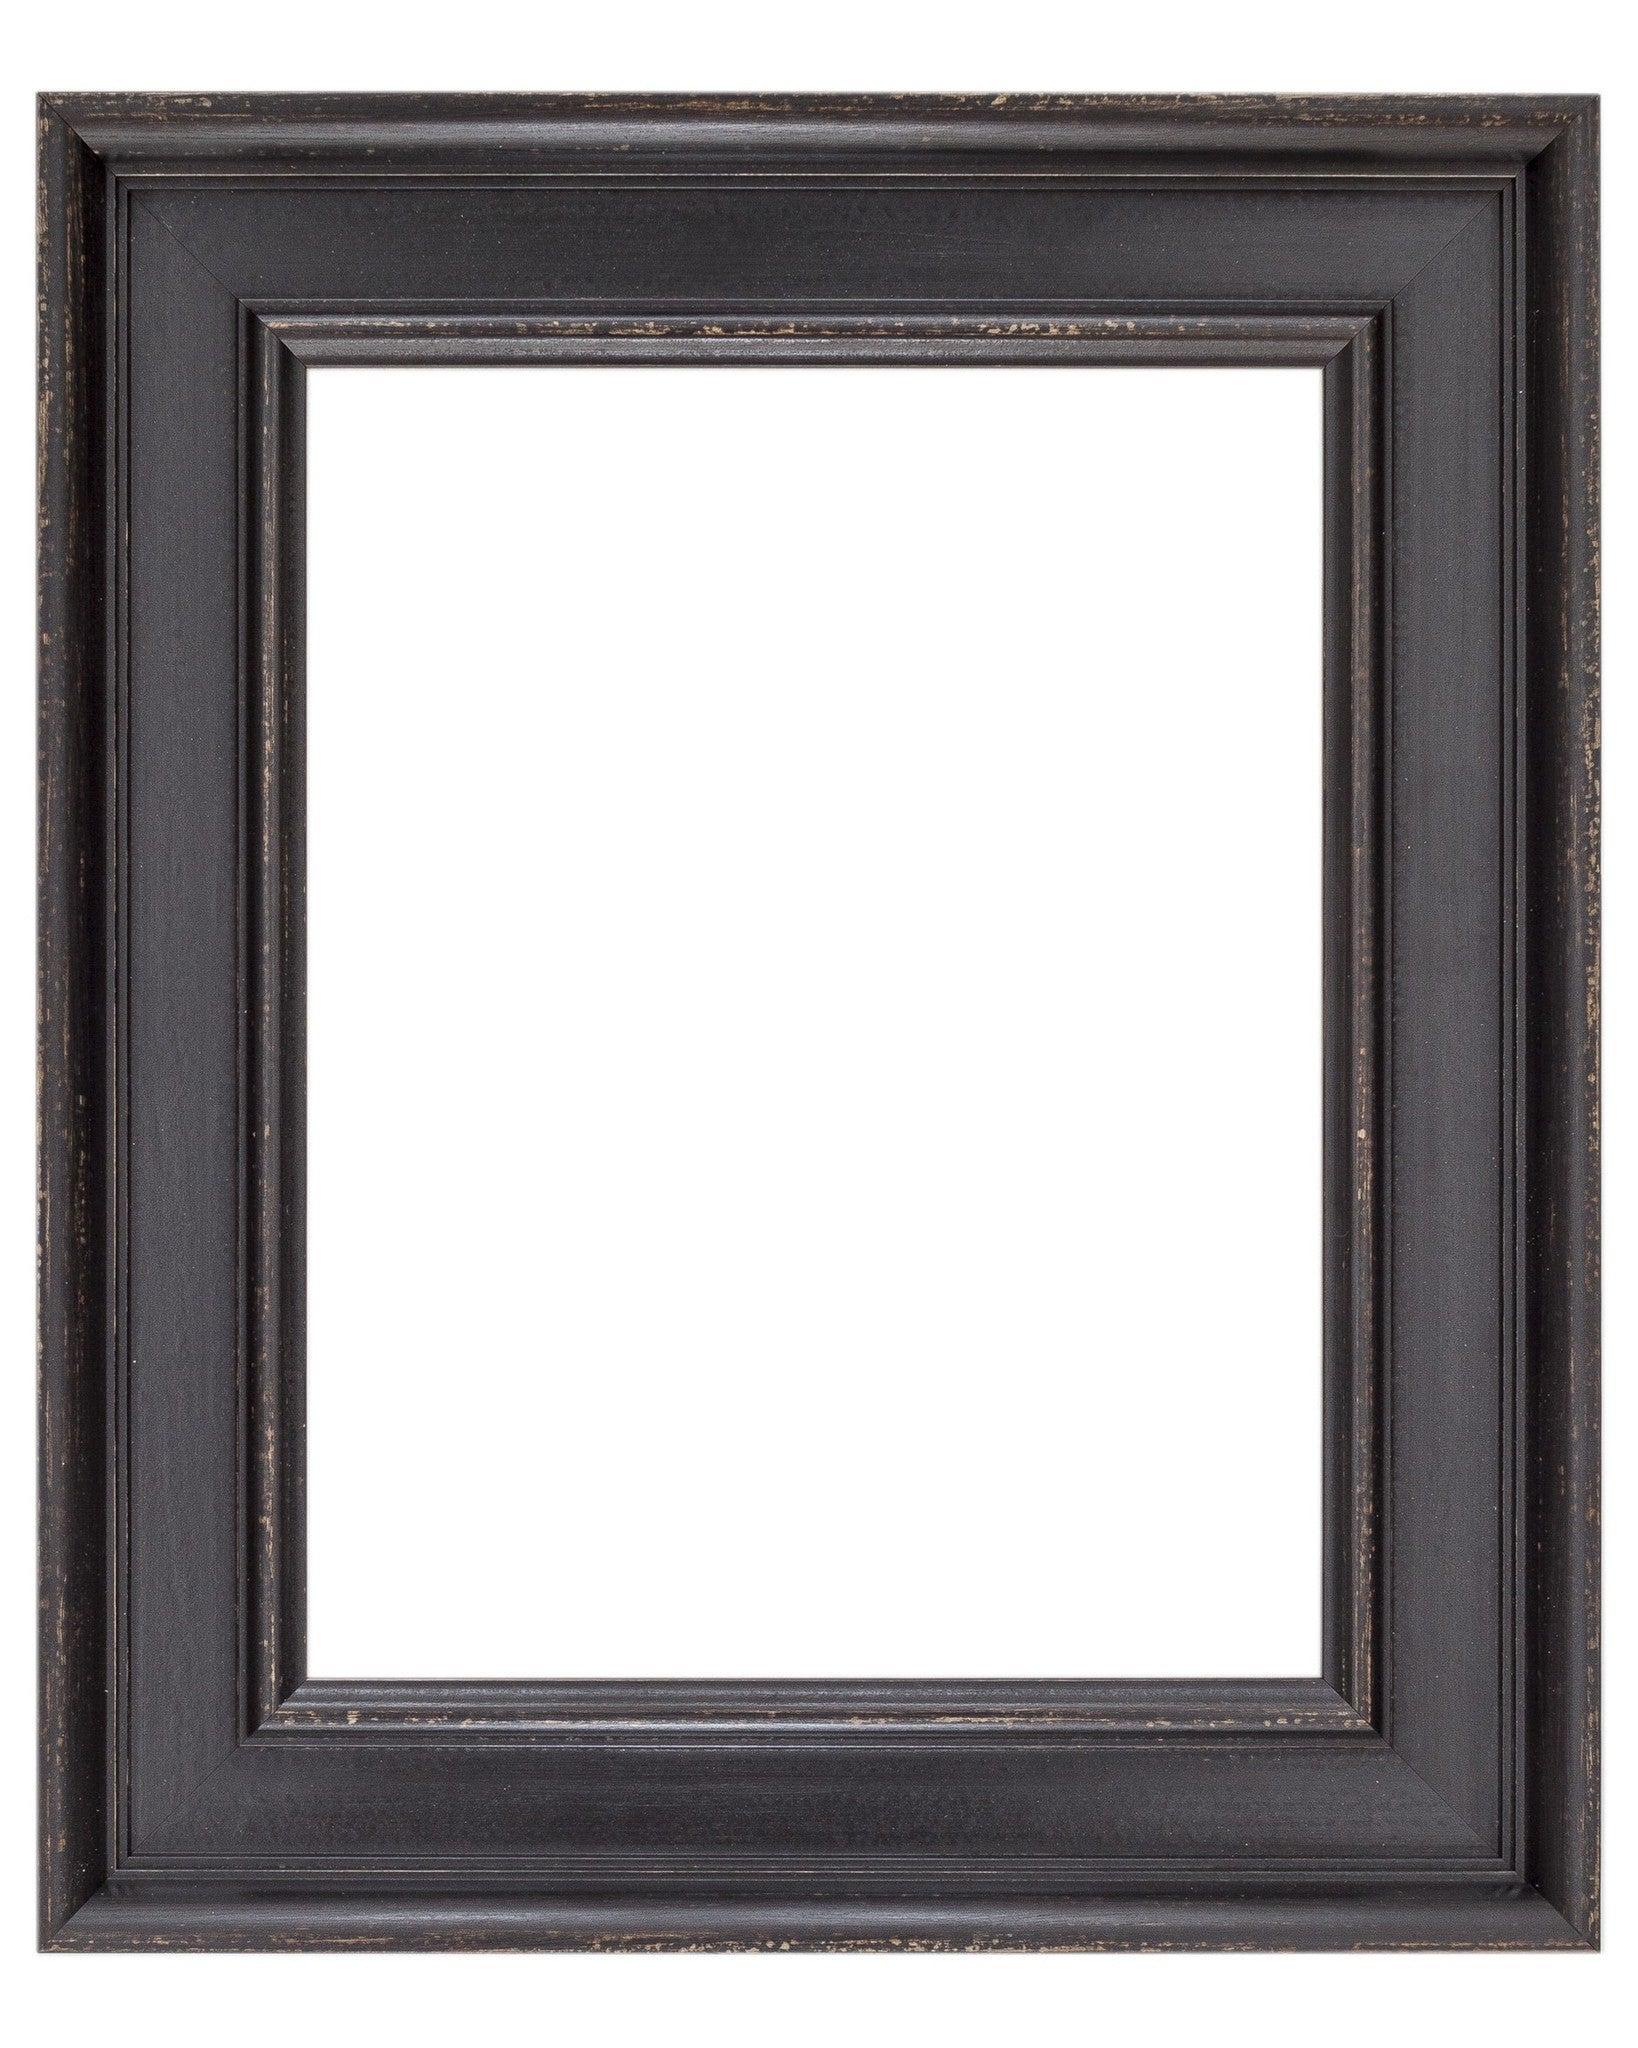 Antique Black Frame Wholesale Frame Company